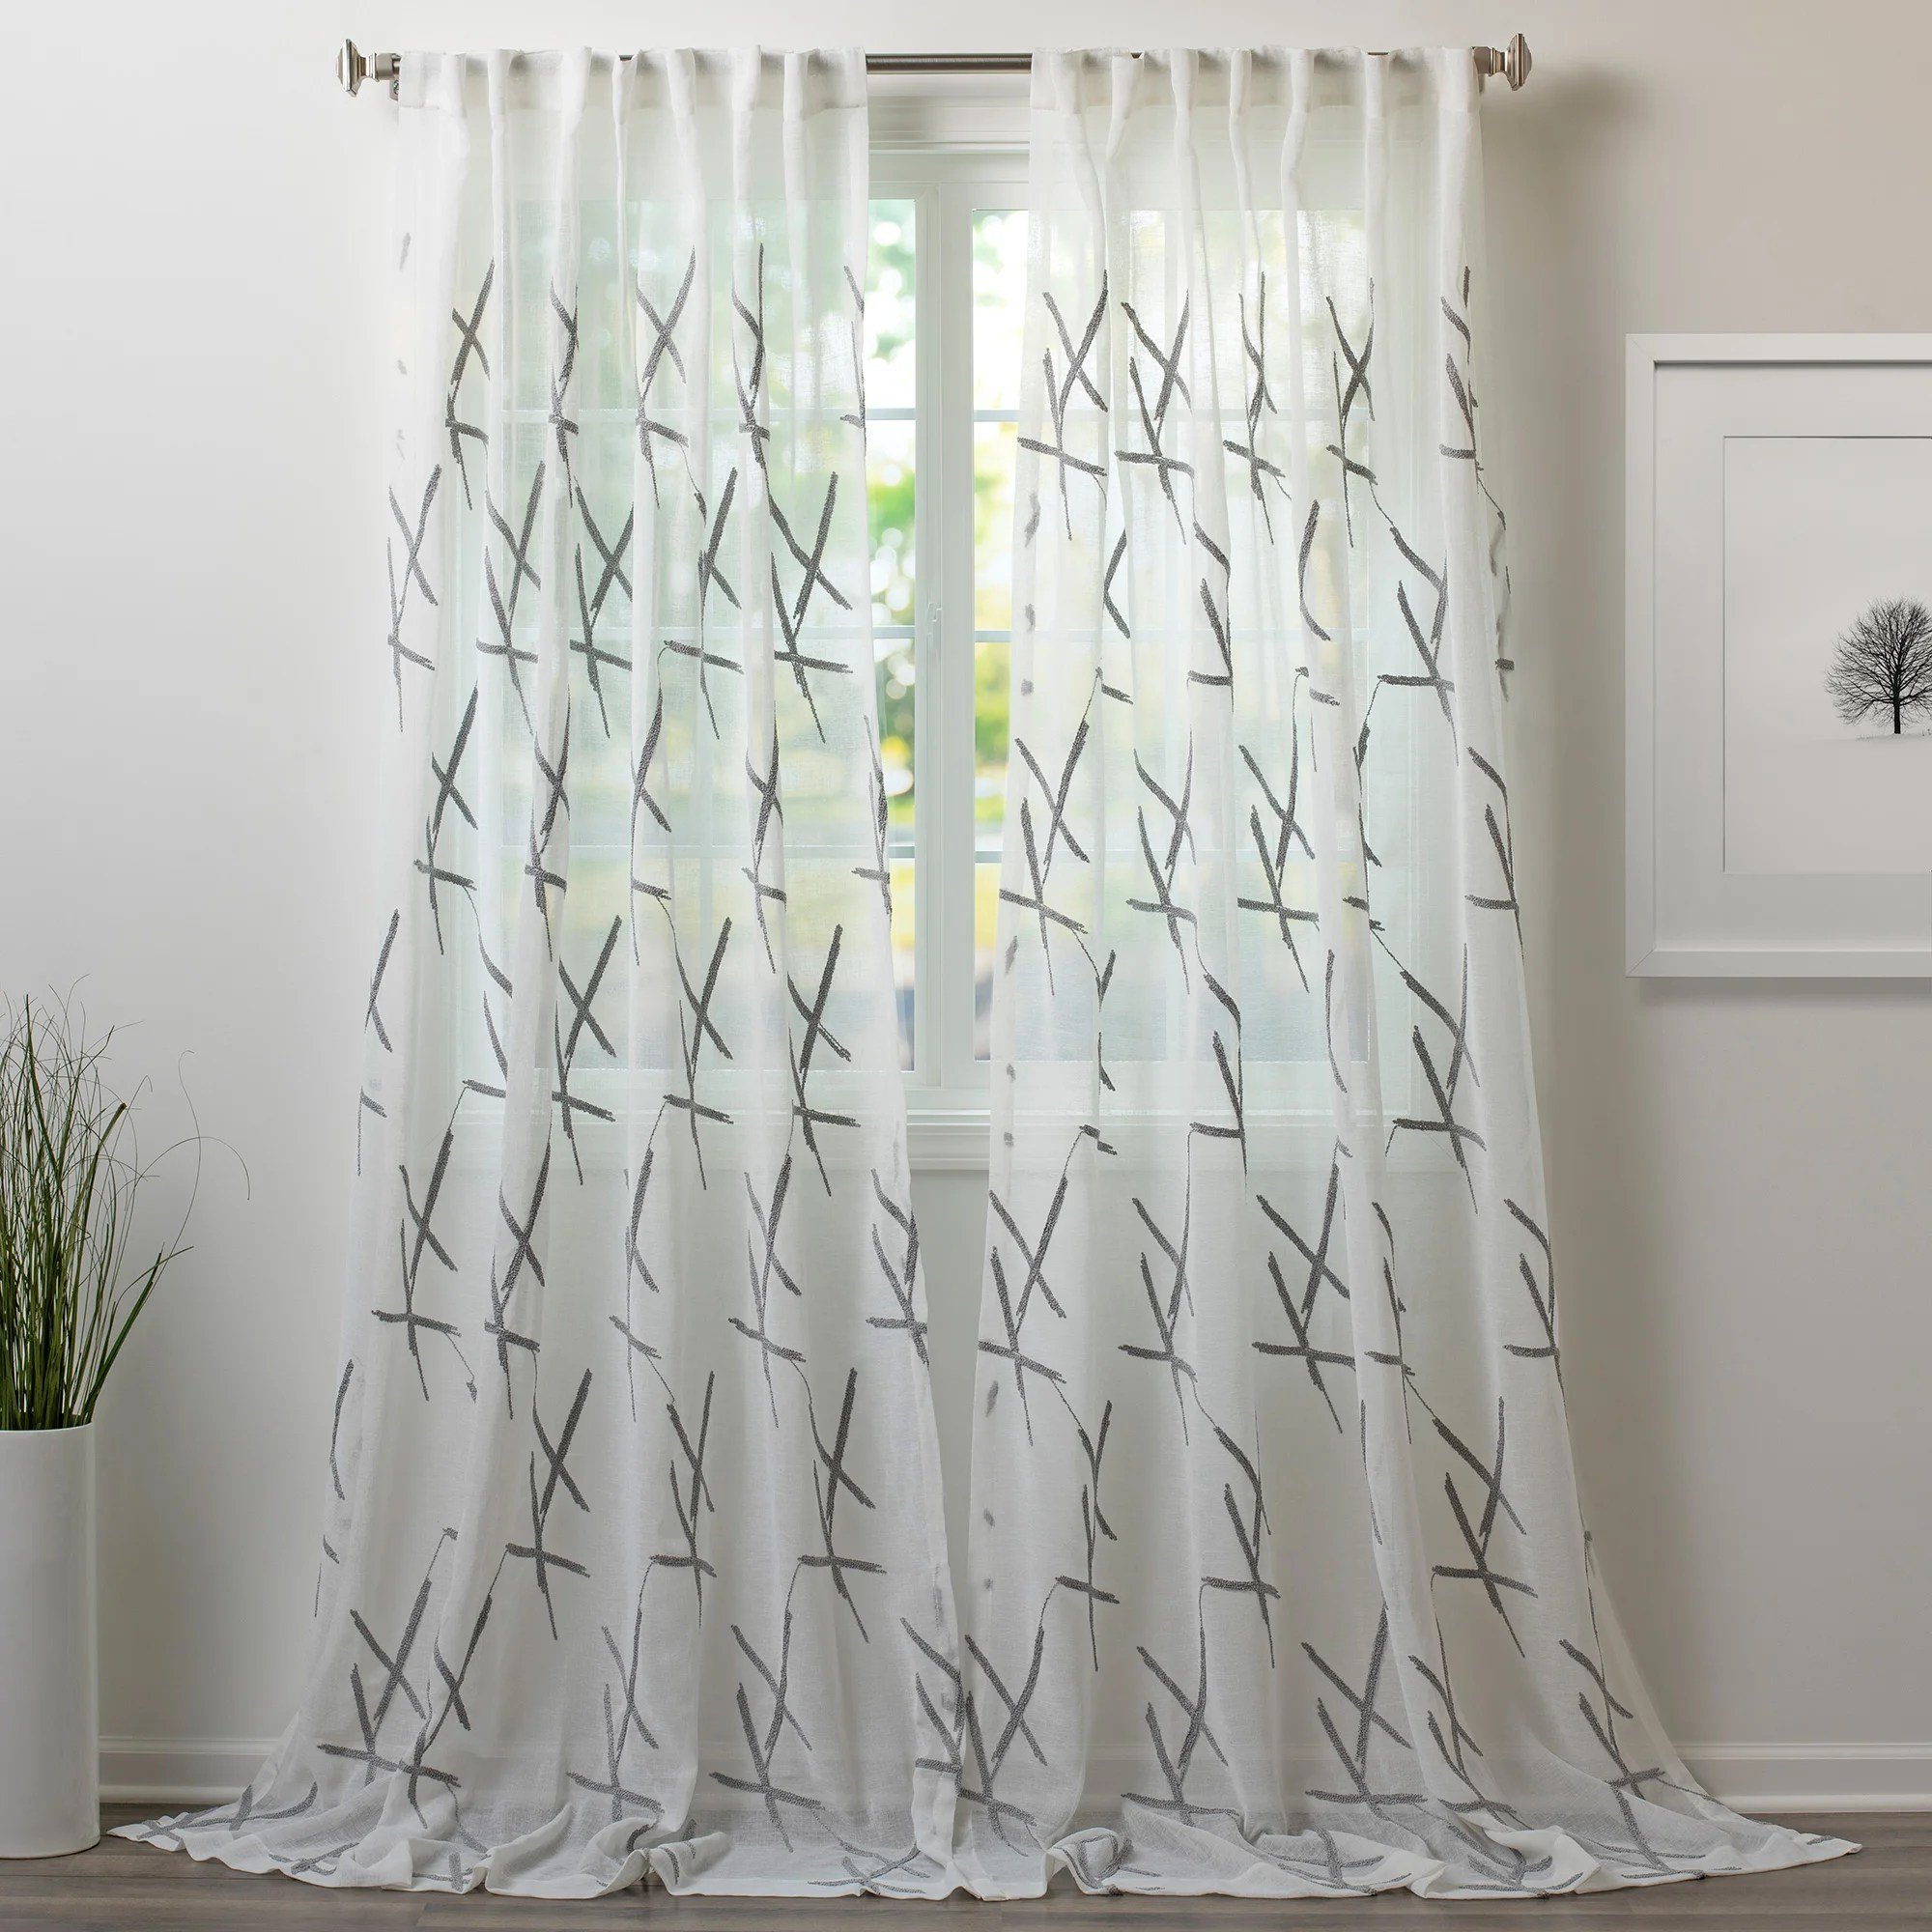 xfactor embroidered sheer rod pocket single curtain panel